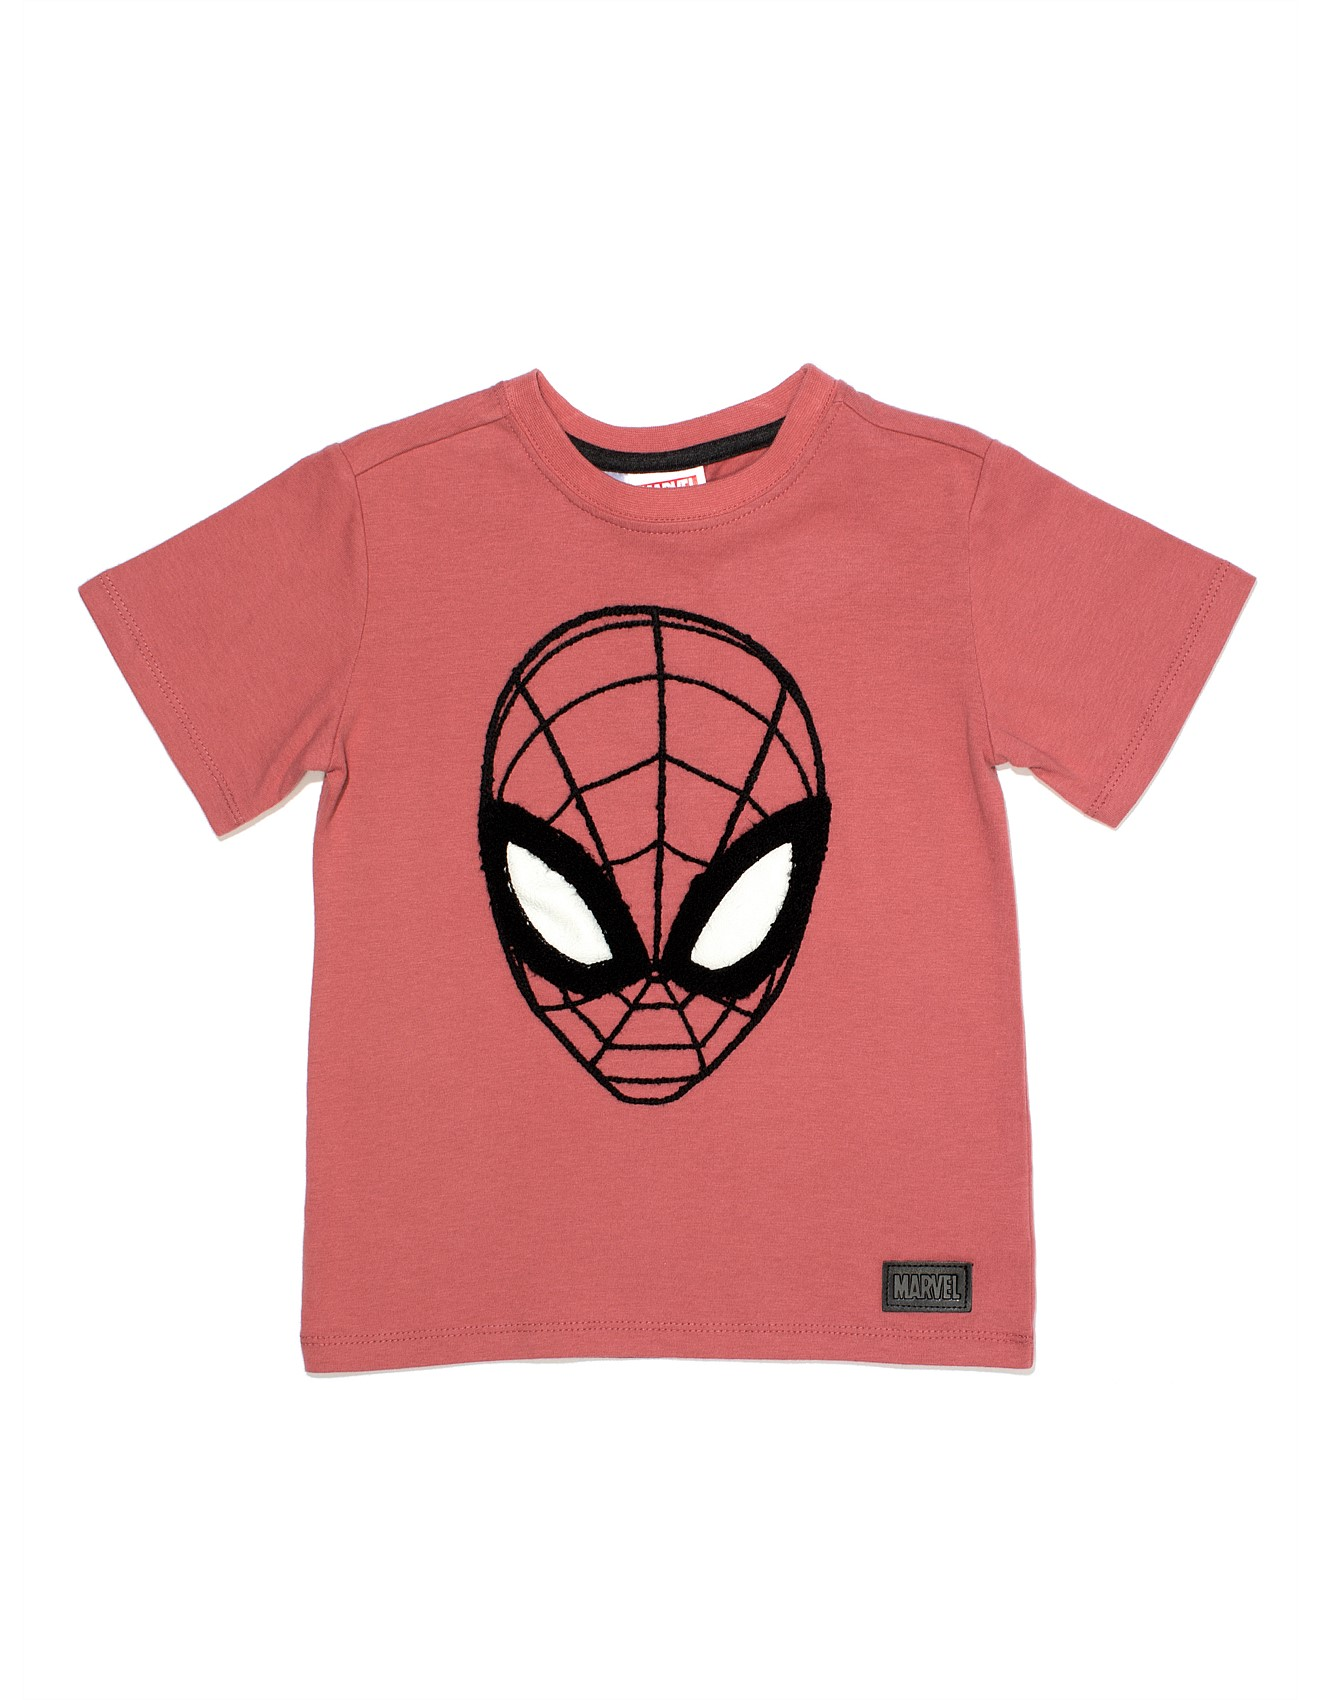 9e07e31c1 Boy's Tops & T-Shirts | Buy Kids Tops Online | David Jones - Disney ...